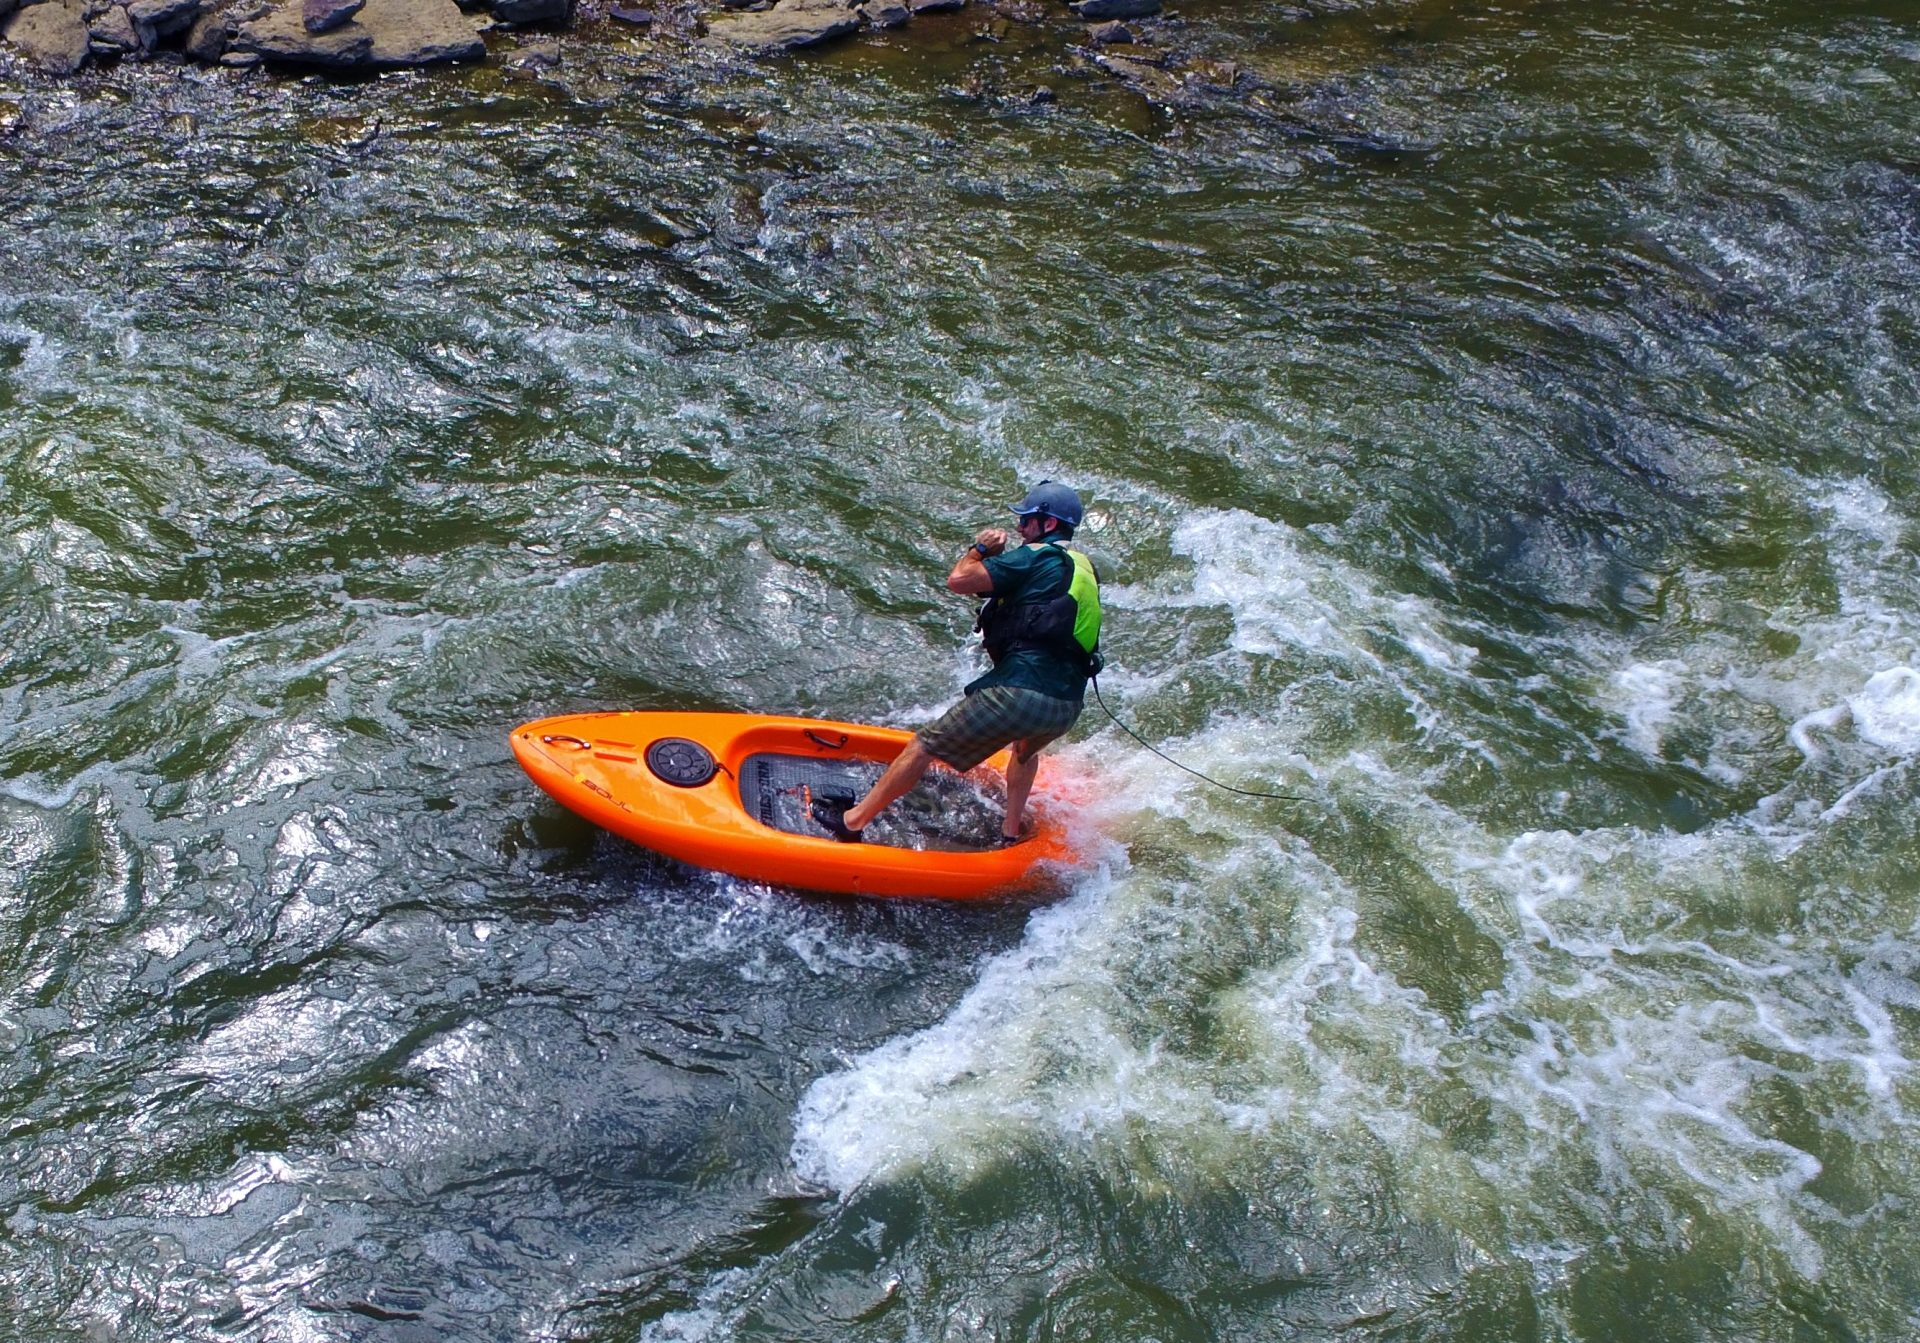 sup kentucky river surfing, sup ky, sup kentucky, explore ky, paddleboard, bluegrass sup, paddle ky, sup fitness, sup classes